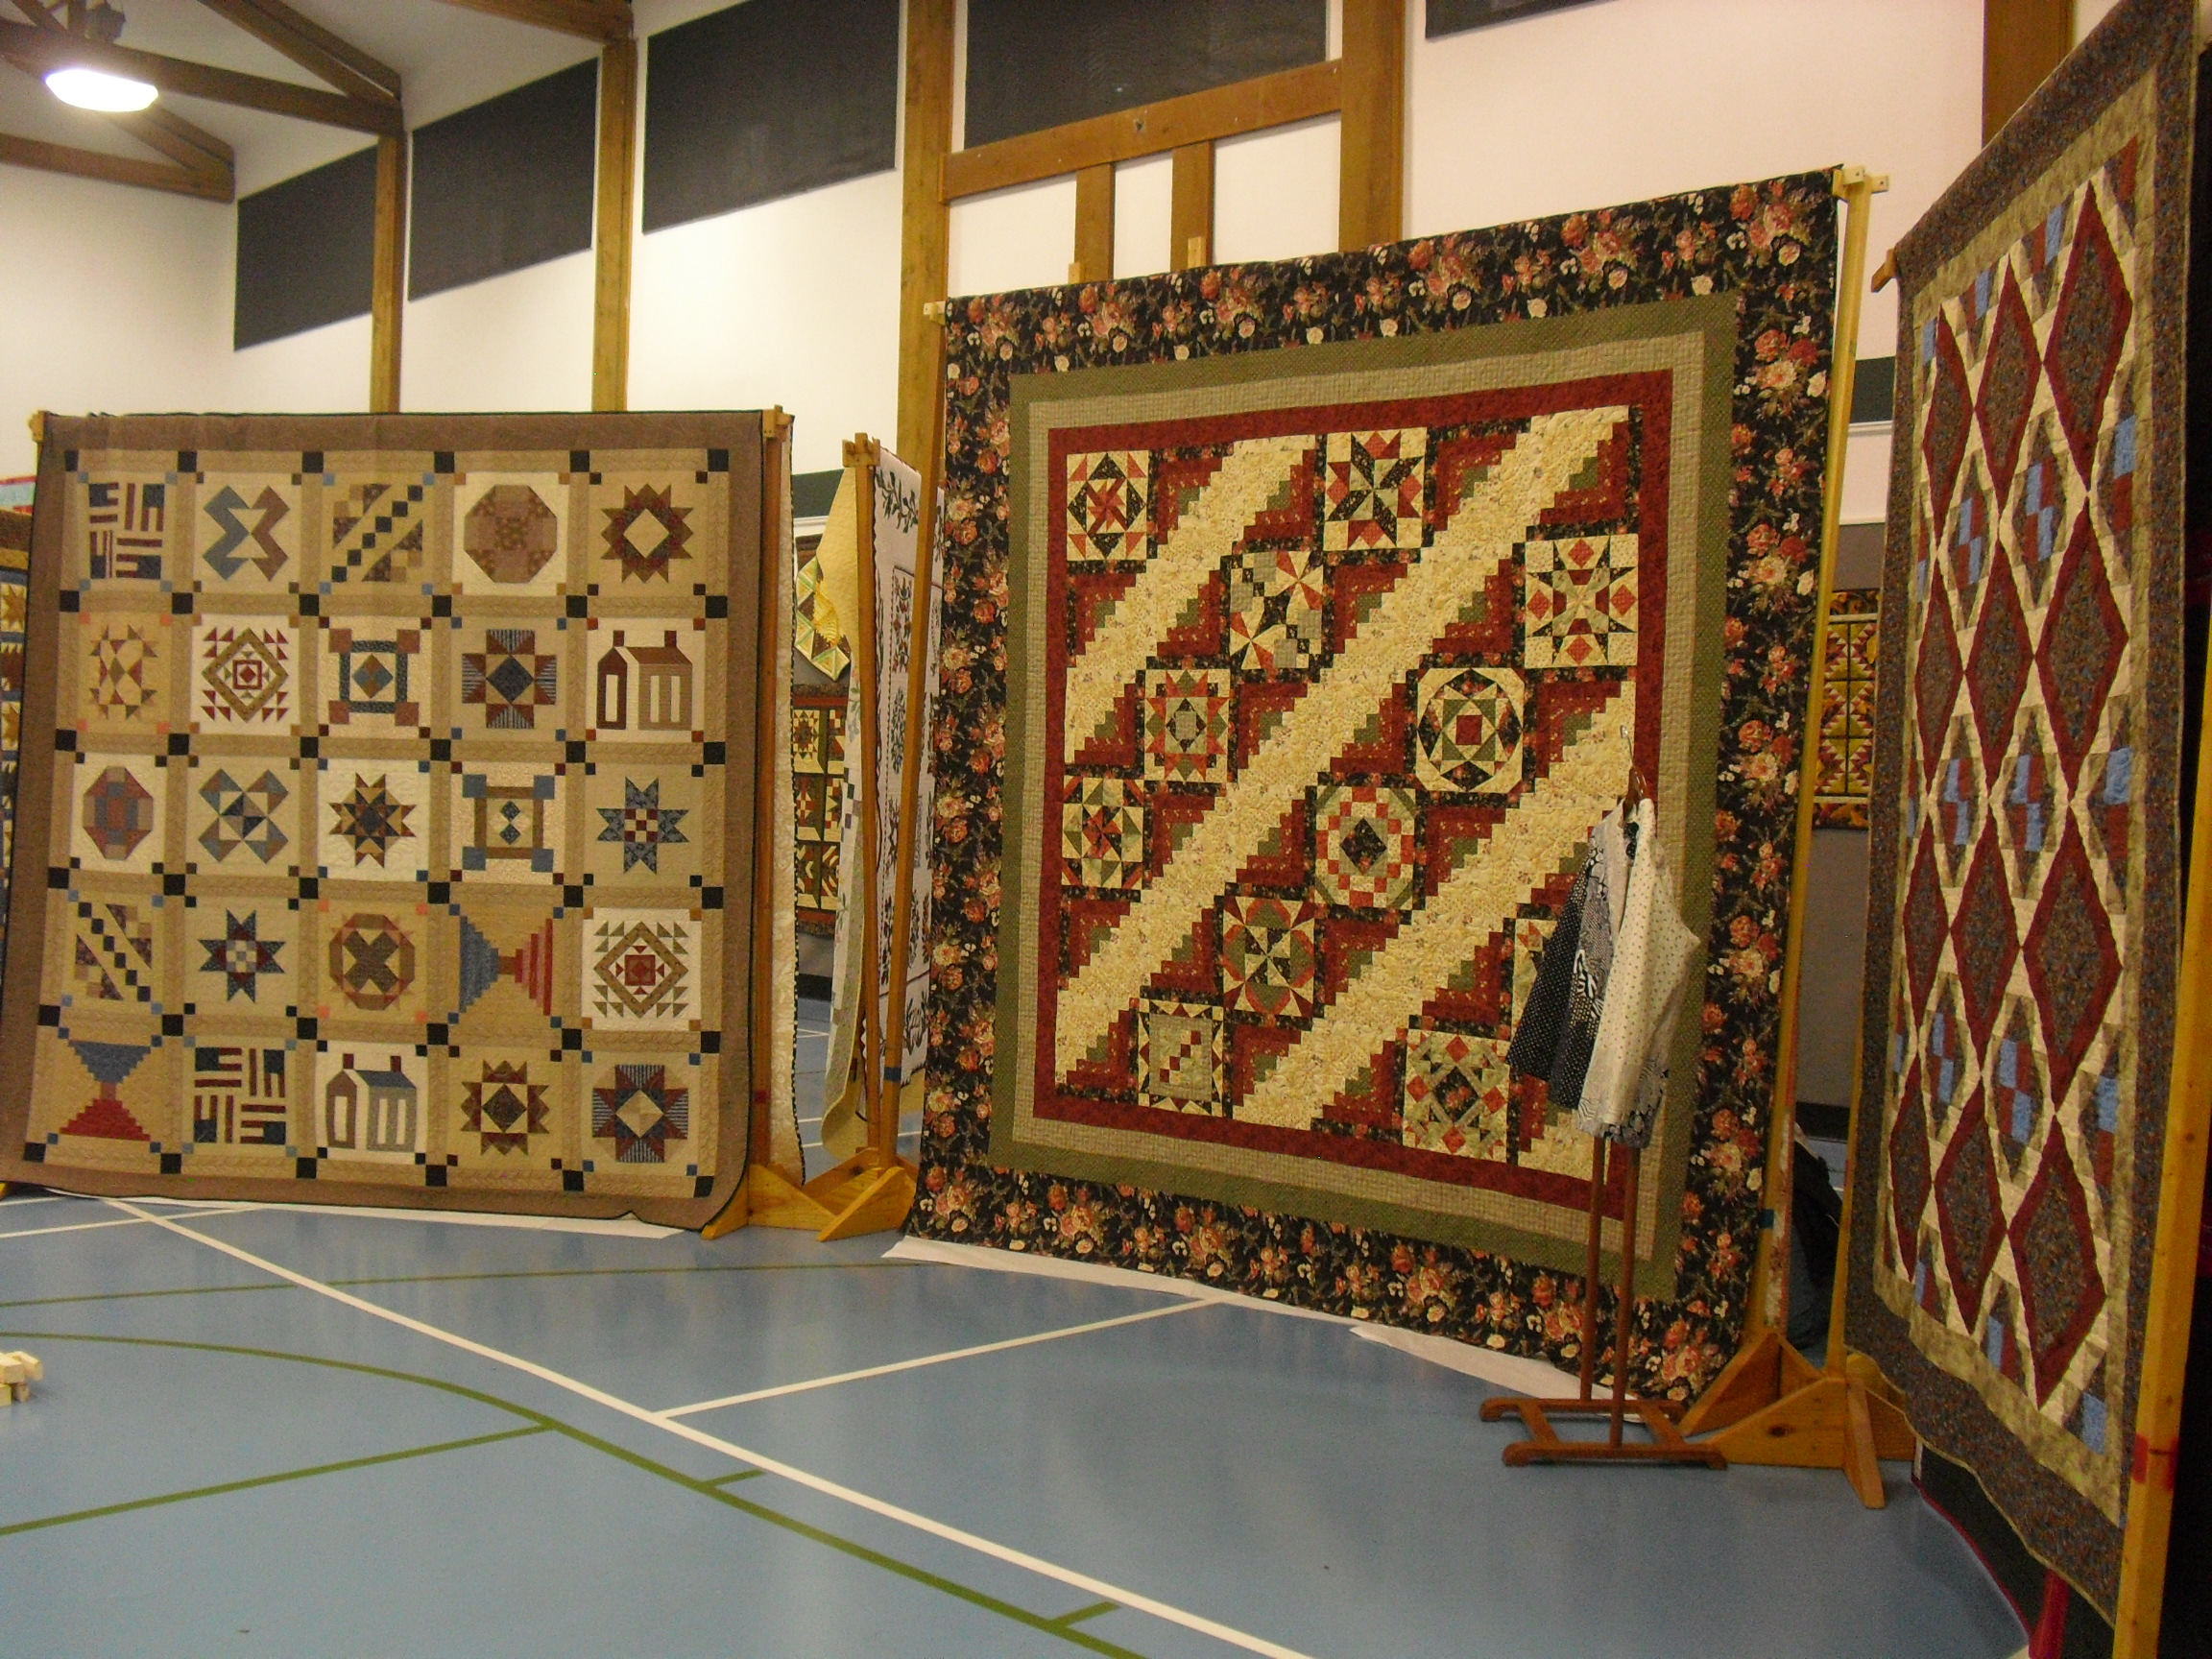 Display of beautiful quilts made by the village's quilting club